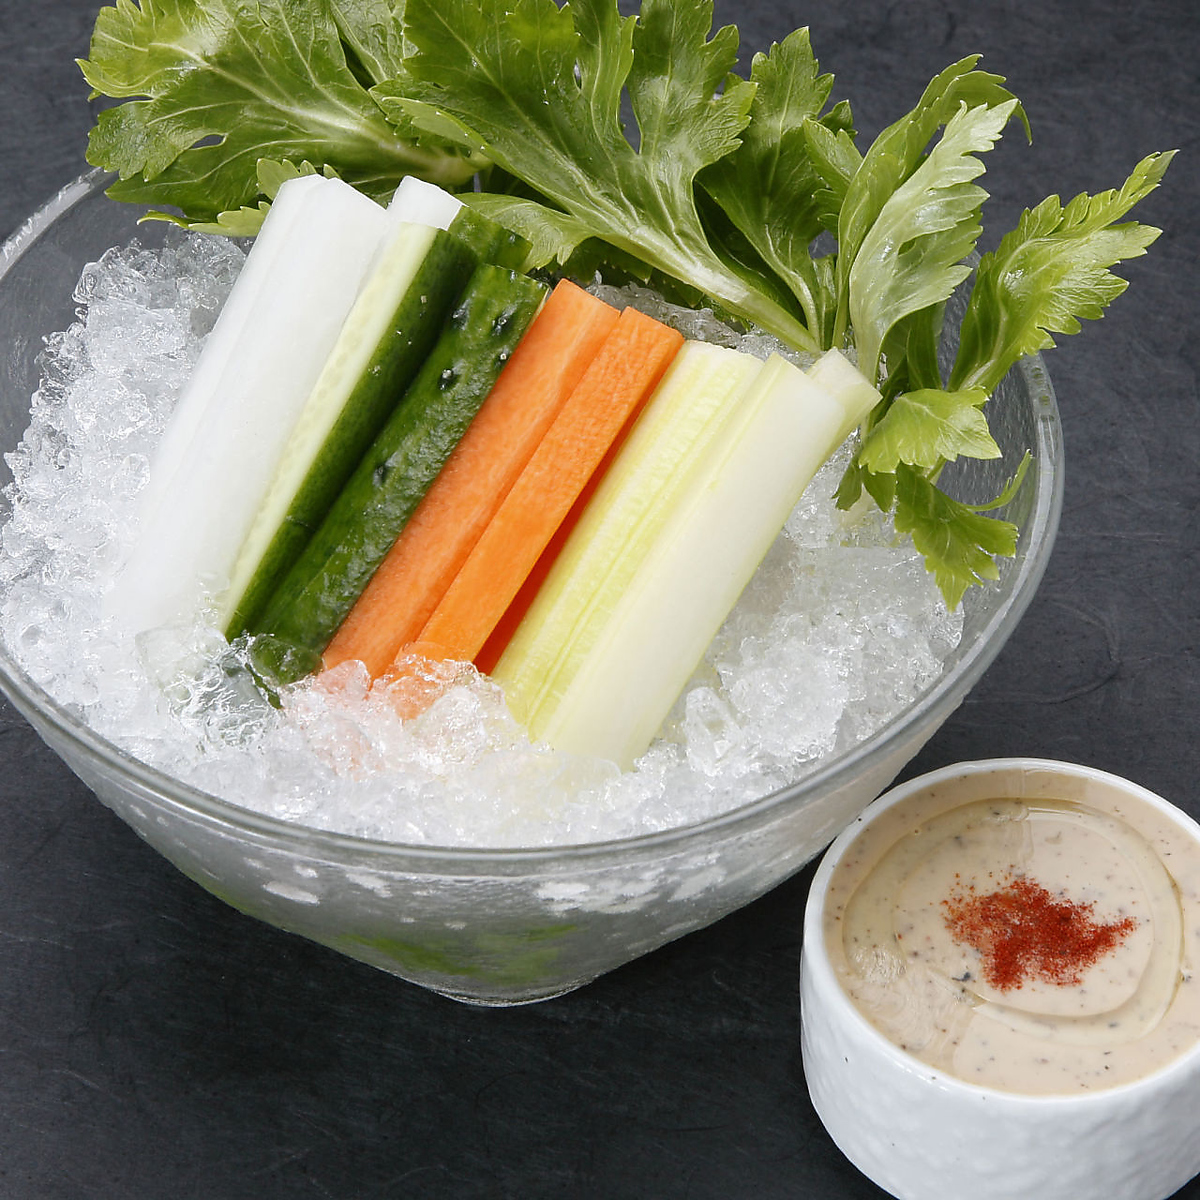 Special-made dip vegetable stick